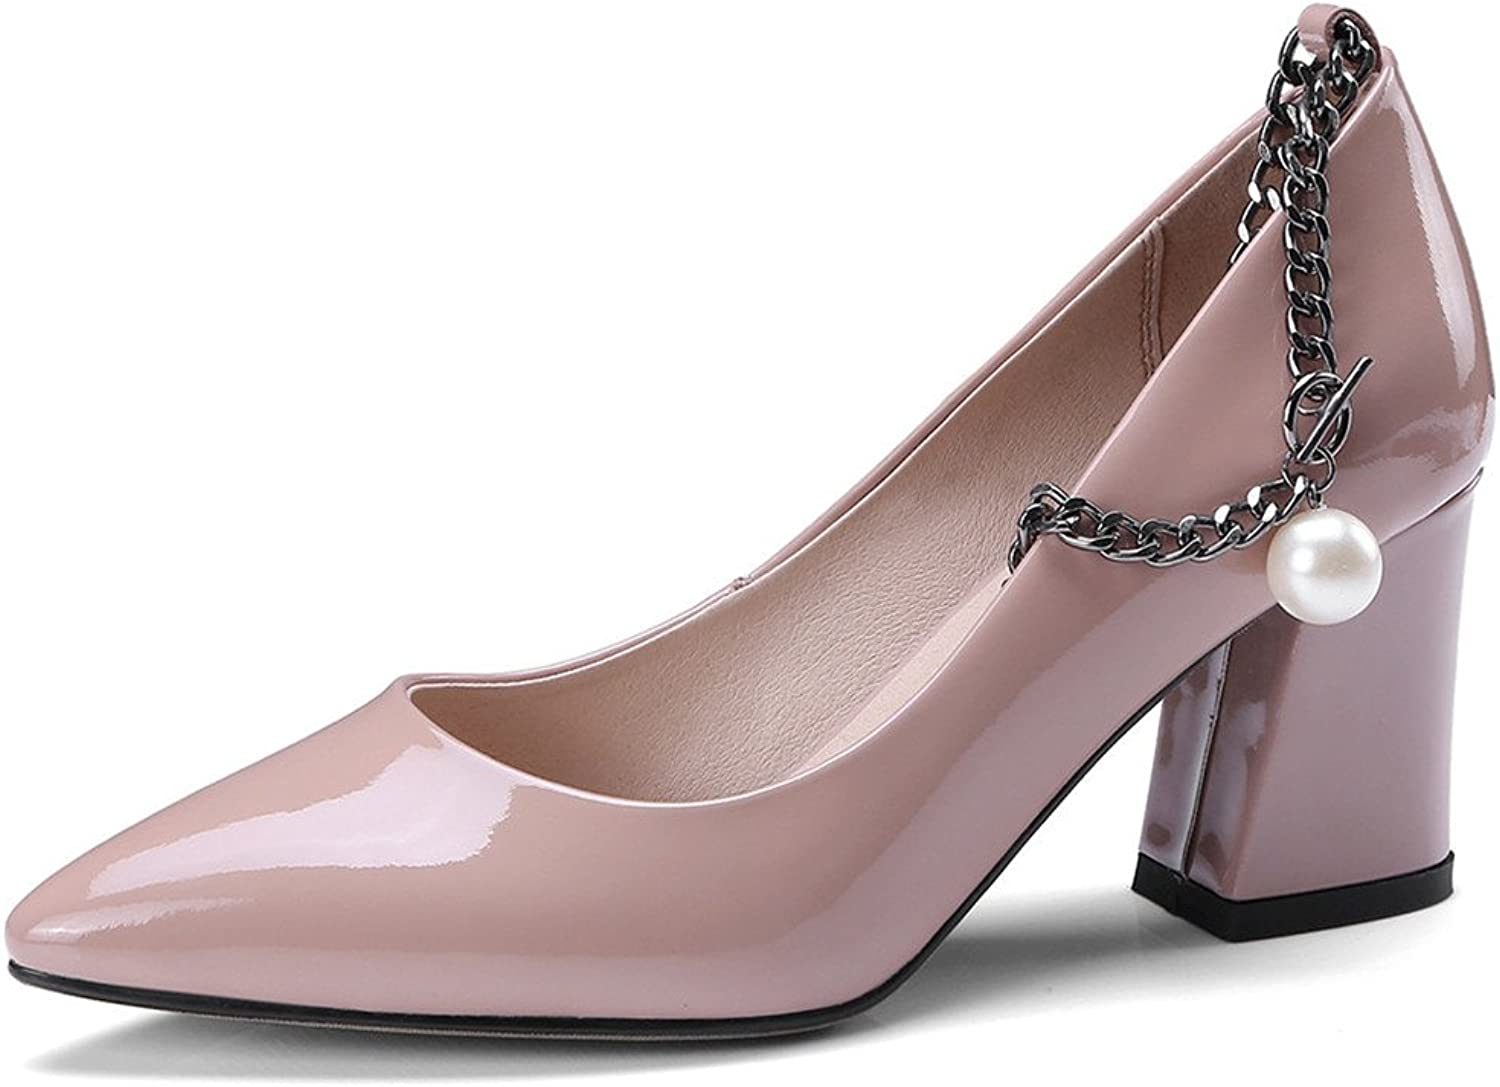 66e3f7a8f9c7d Seven Patent Leather Women's Pointy Toe Block Heel Chains Sexy ...